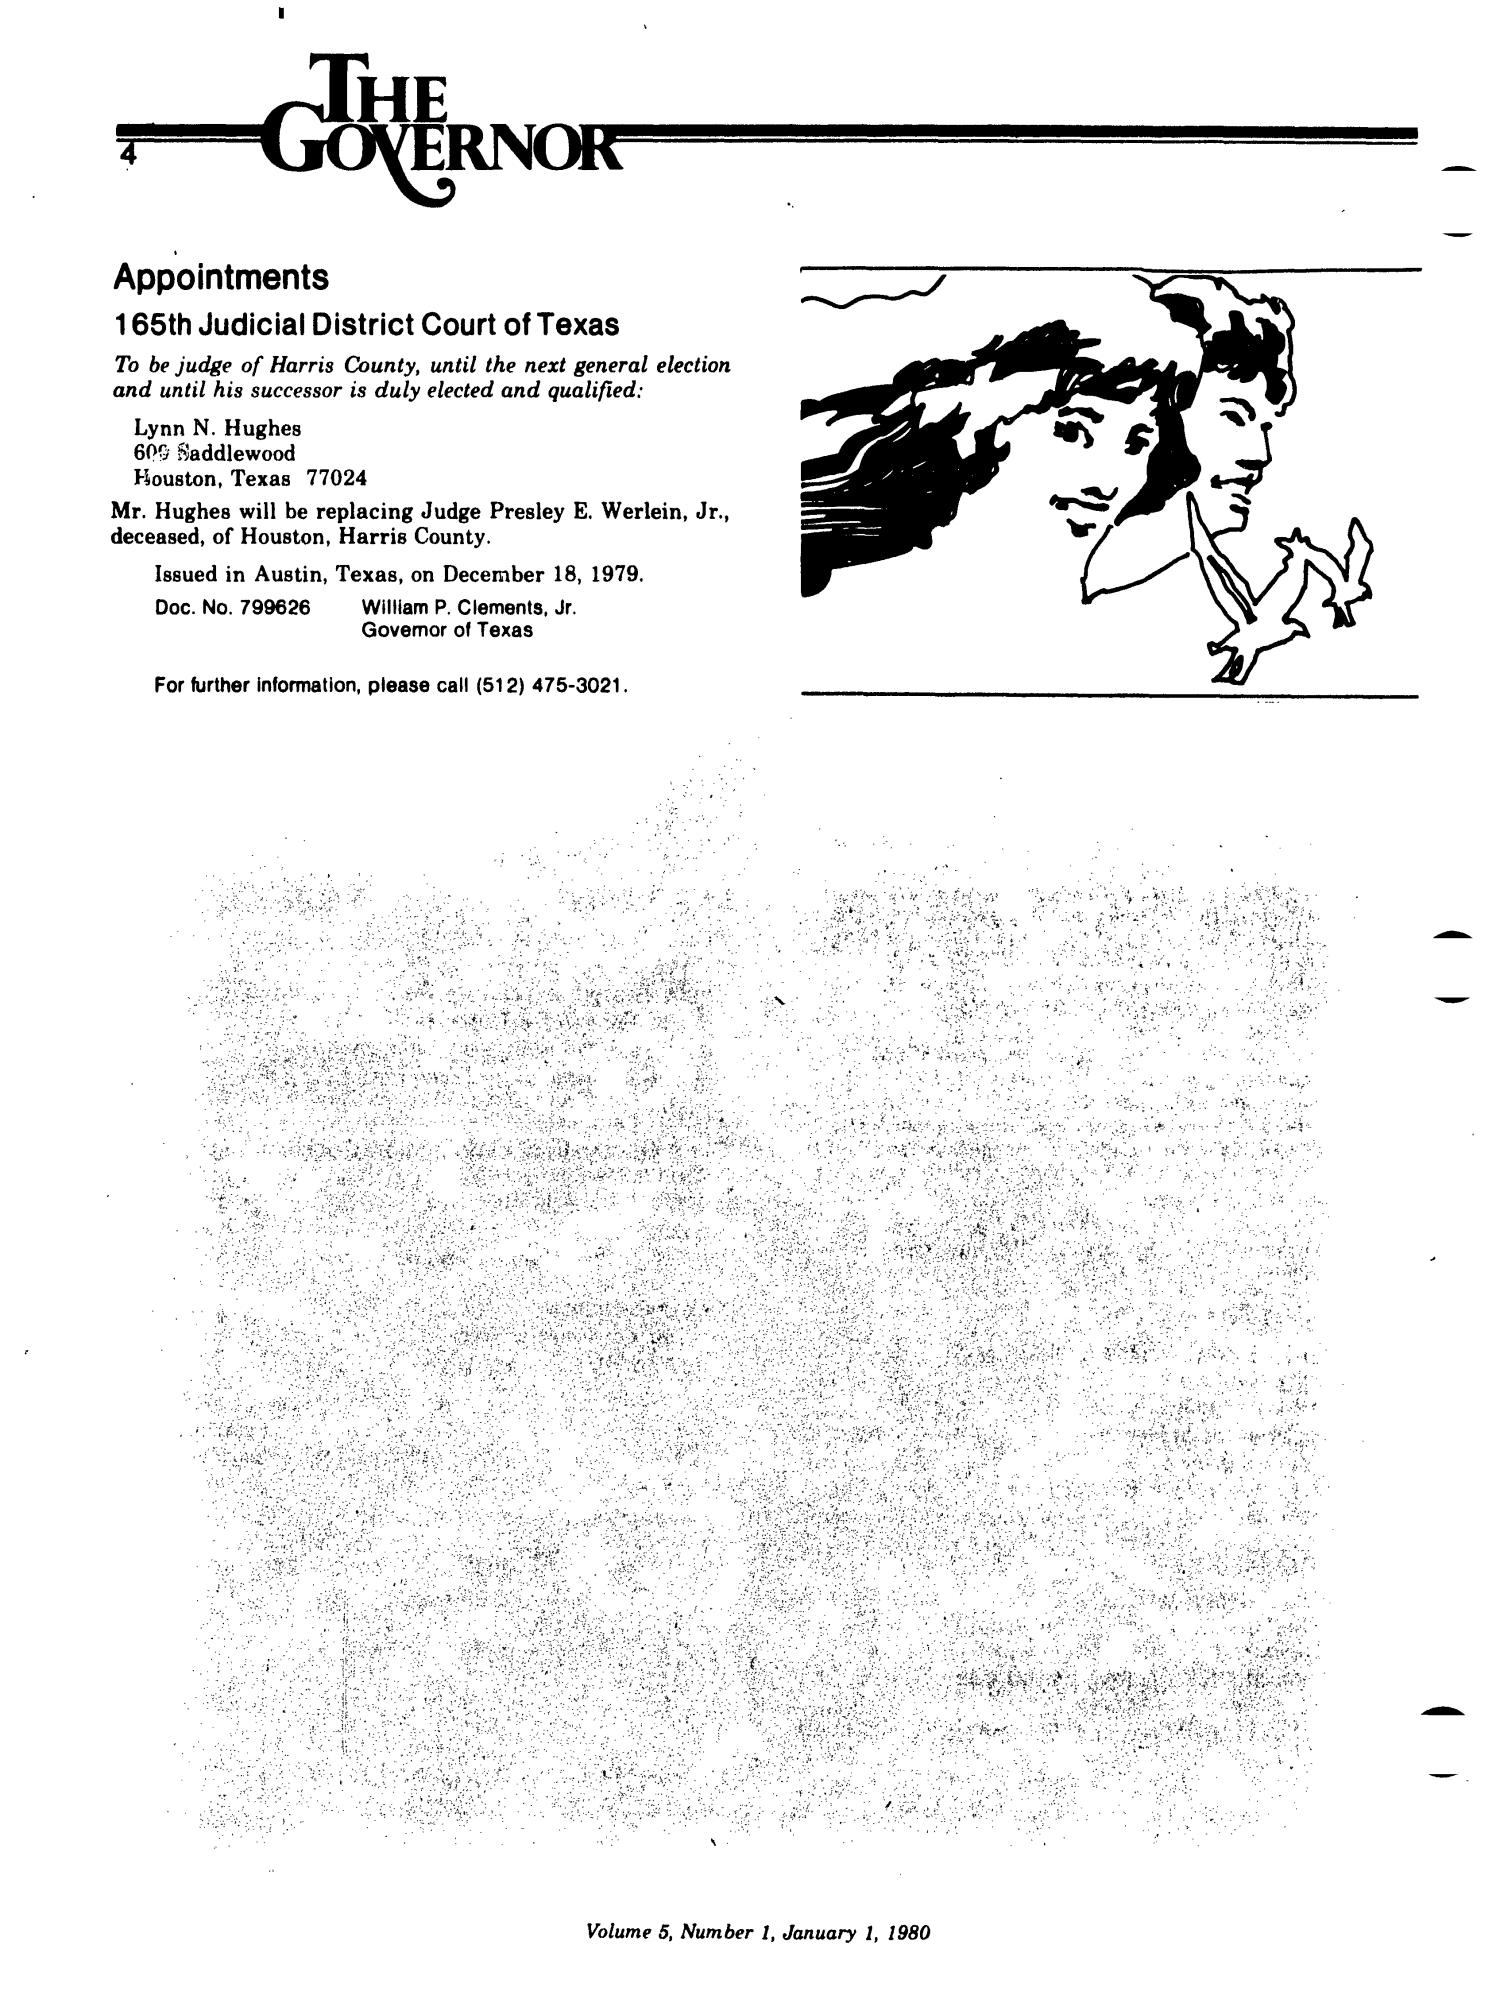 Texas Register, Volume 5, Number 1, Pages 1-30, January 1, 1980                                                                                                      4